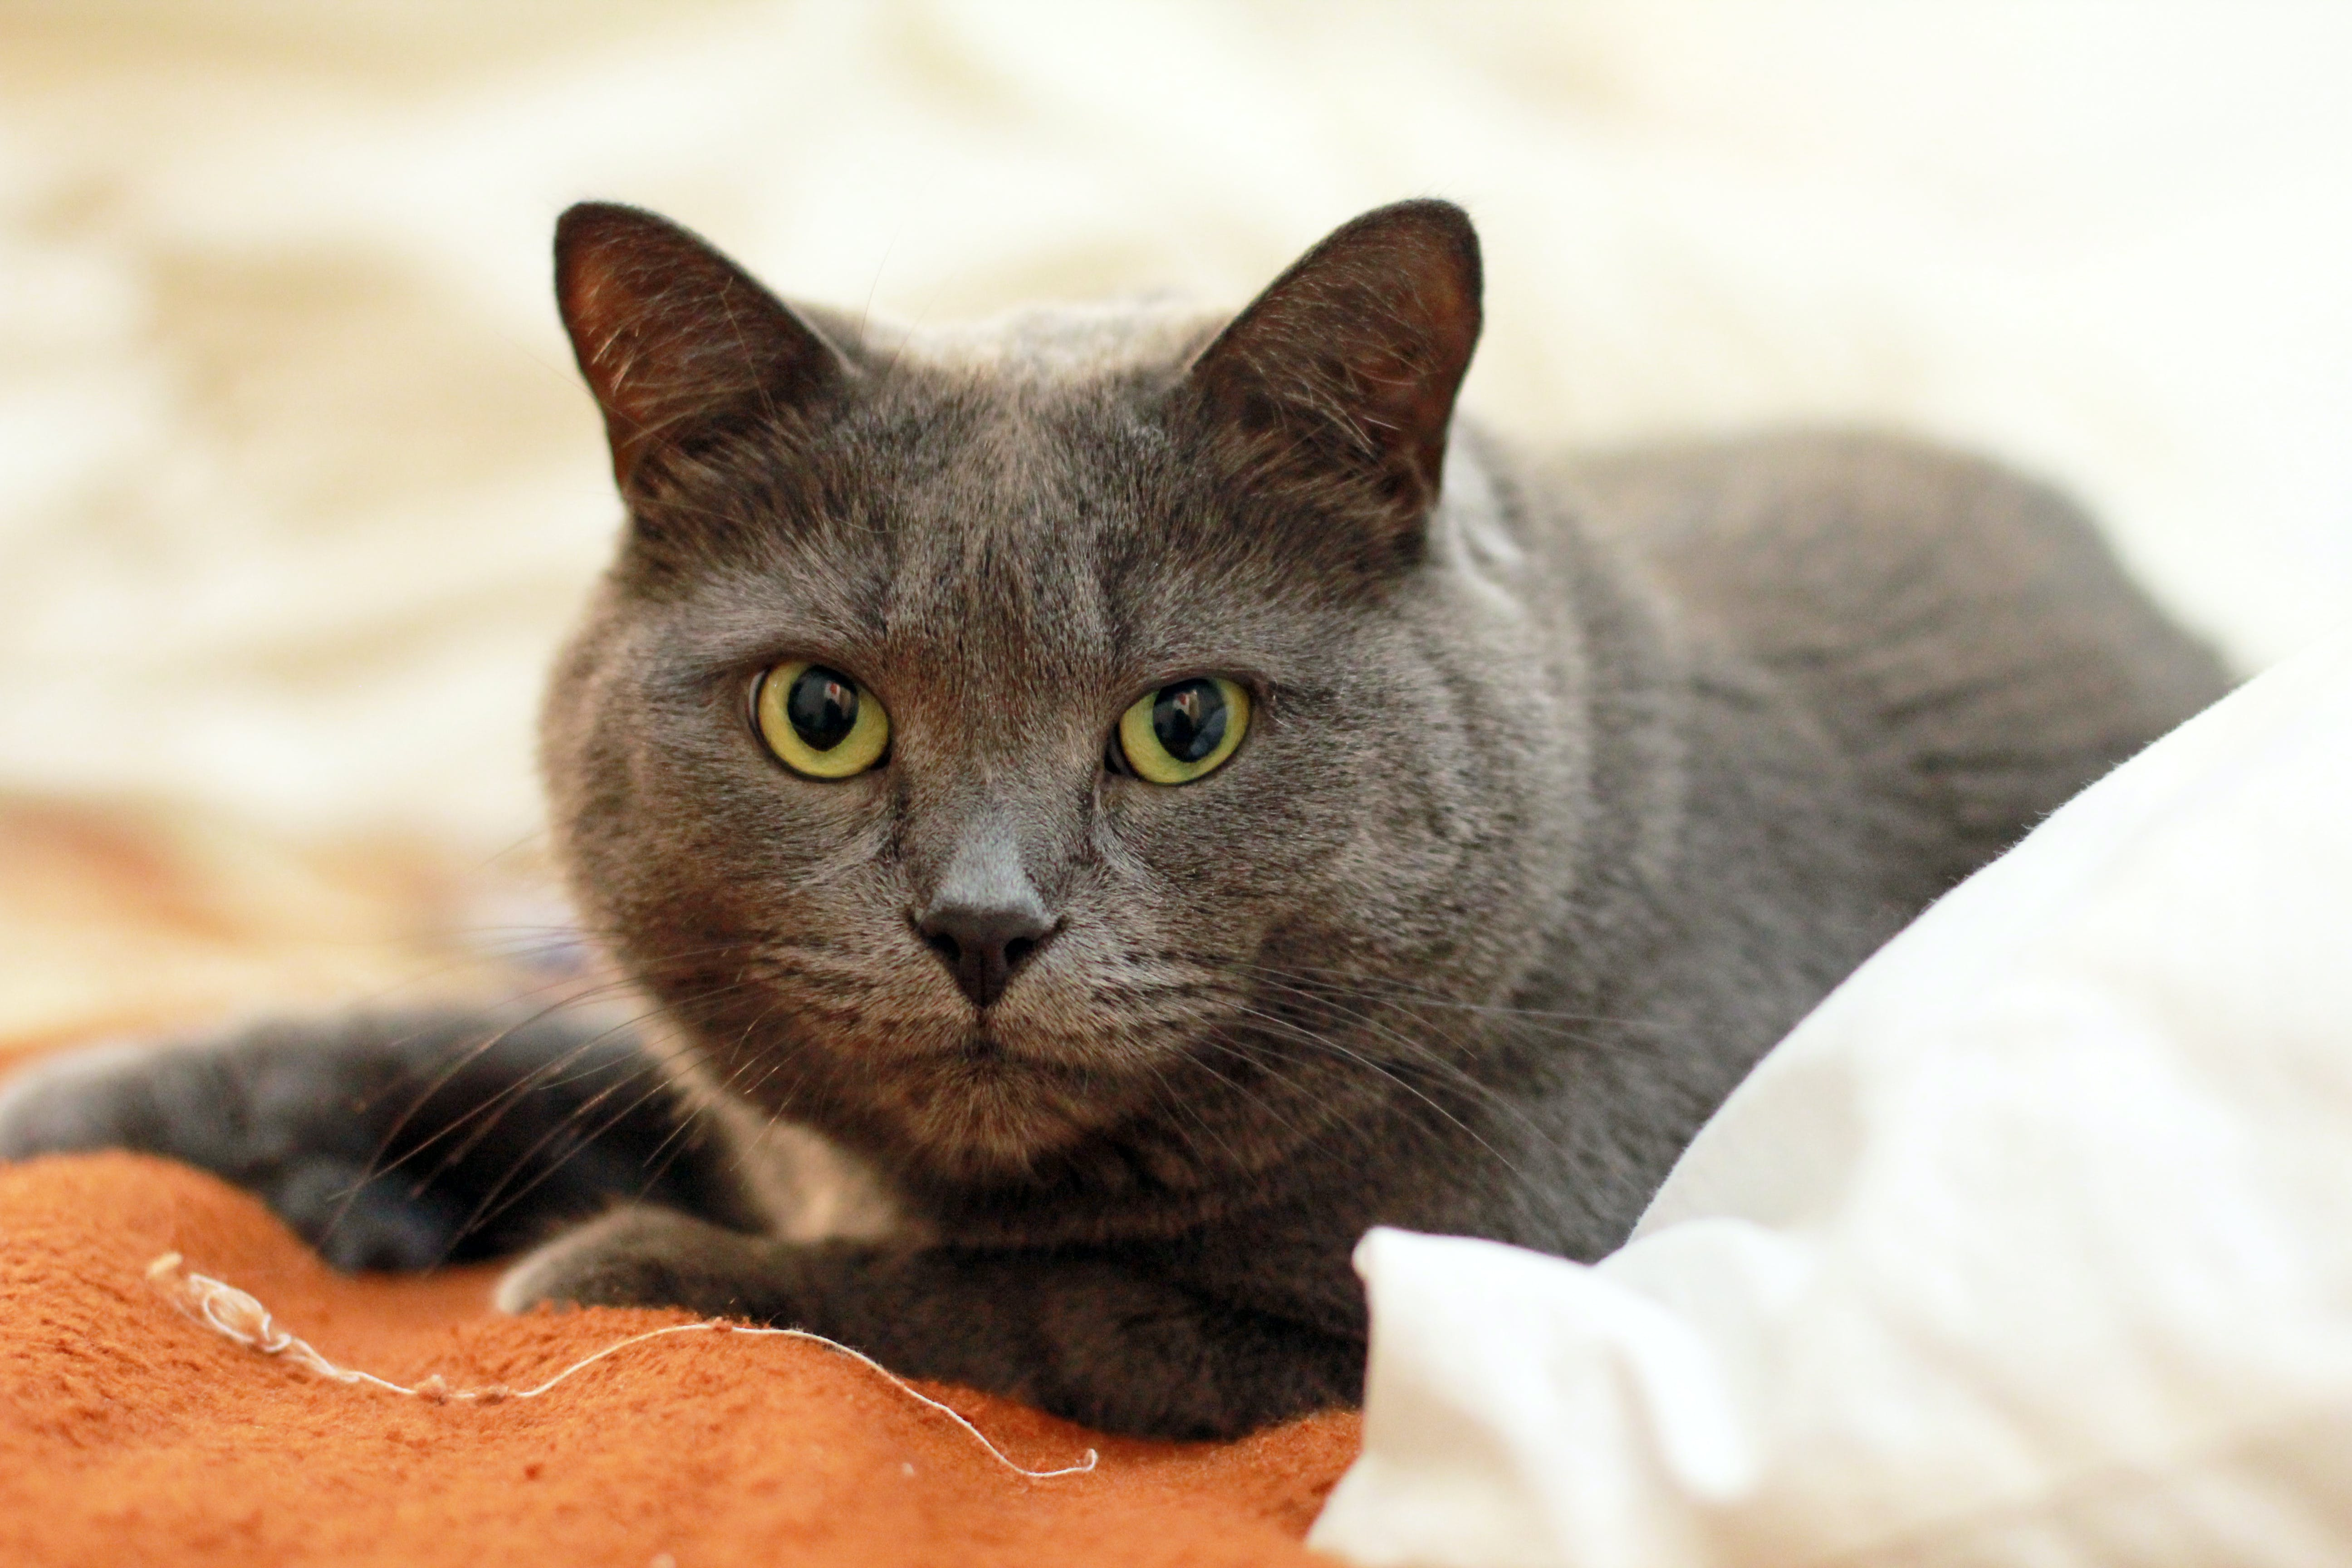 Russian Blue Cat on Top of Orange and White Textile